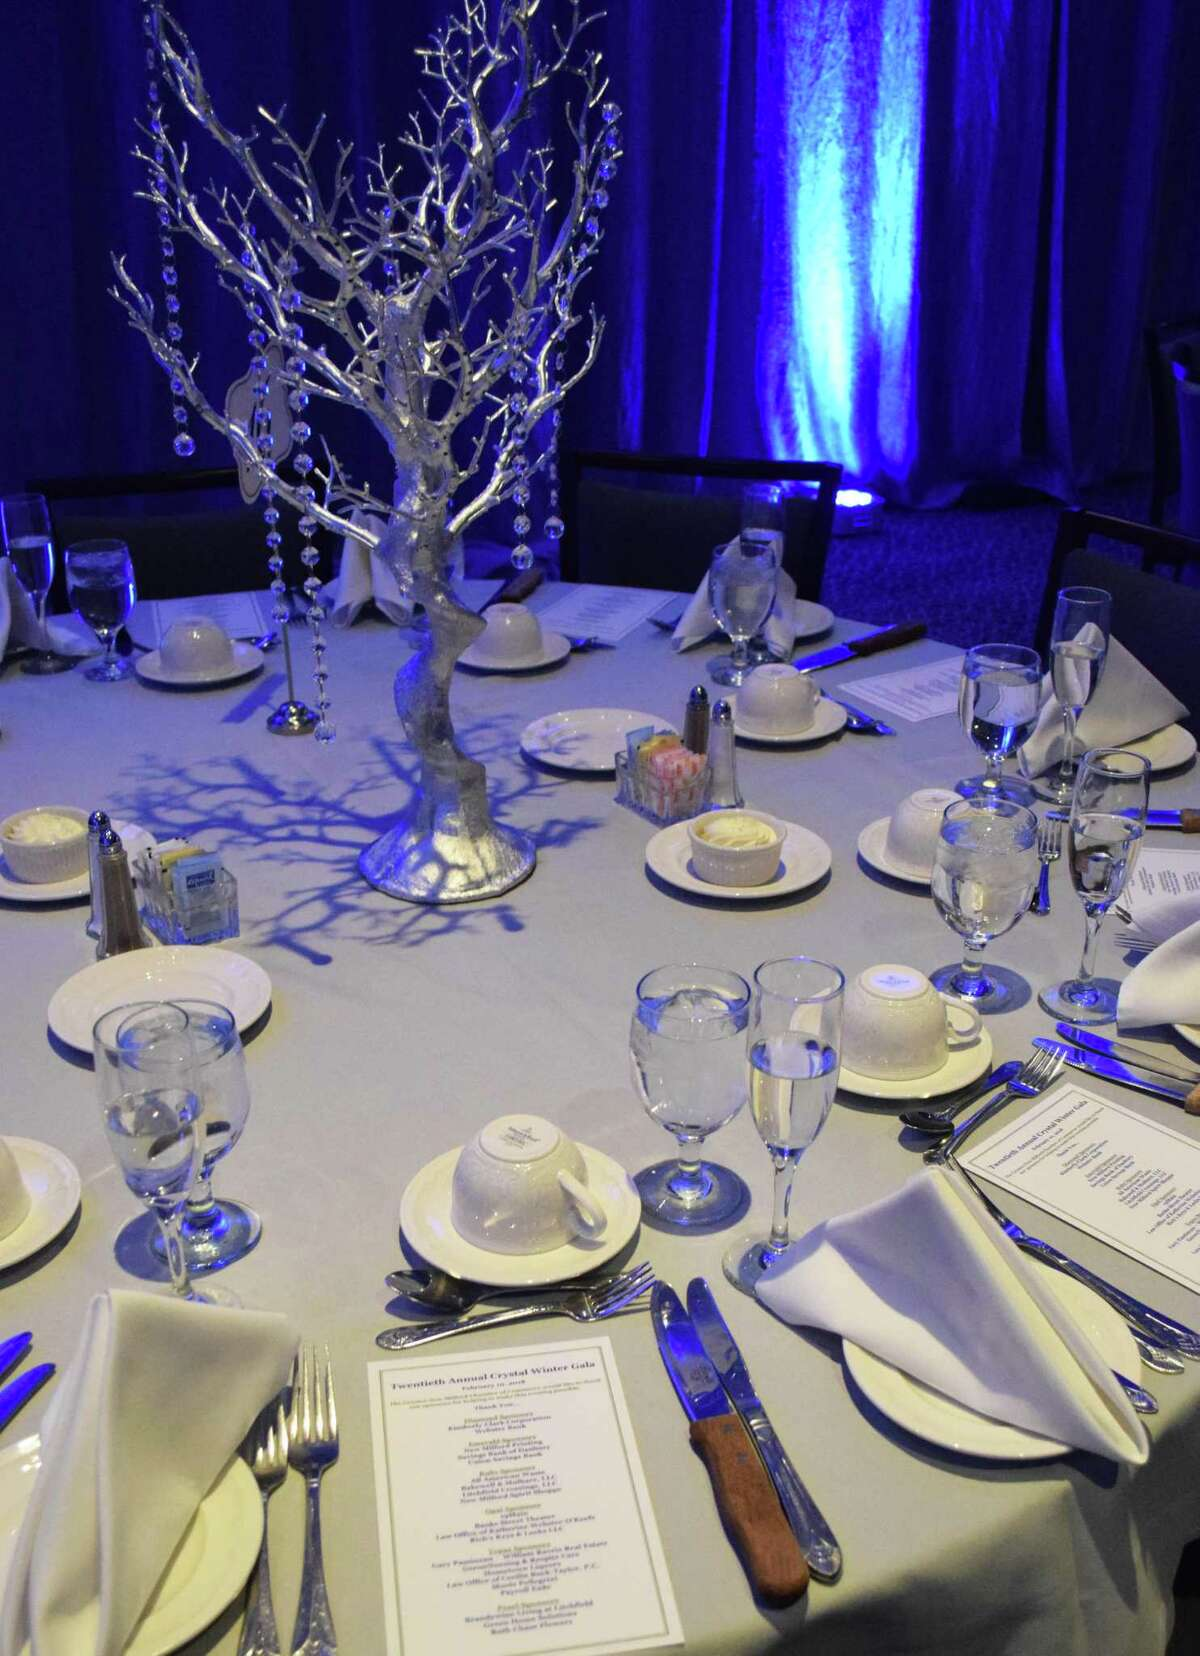 Table setting at the Greater New Milford Chamber of Commerce's 20th annual Crystal Winter Gala held FEb. 10, 2018 at the Amber Room Colonnade in Danbury.